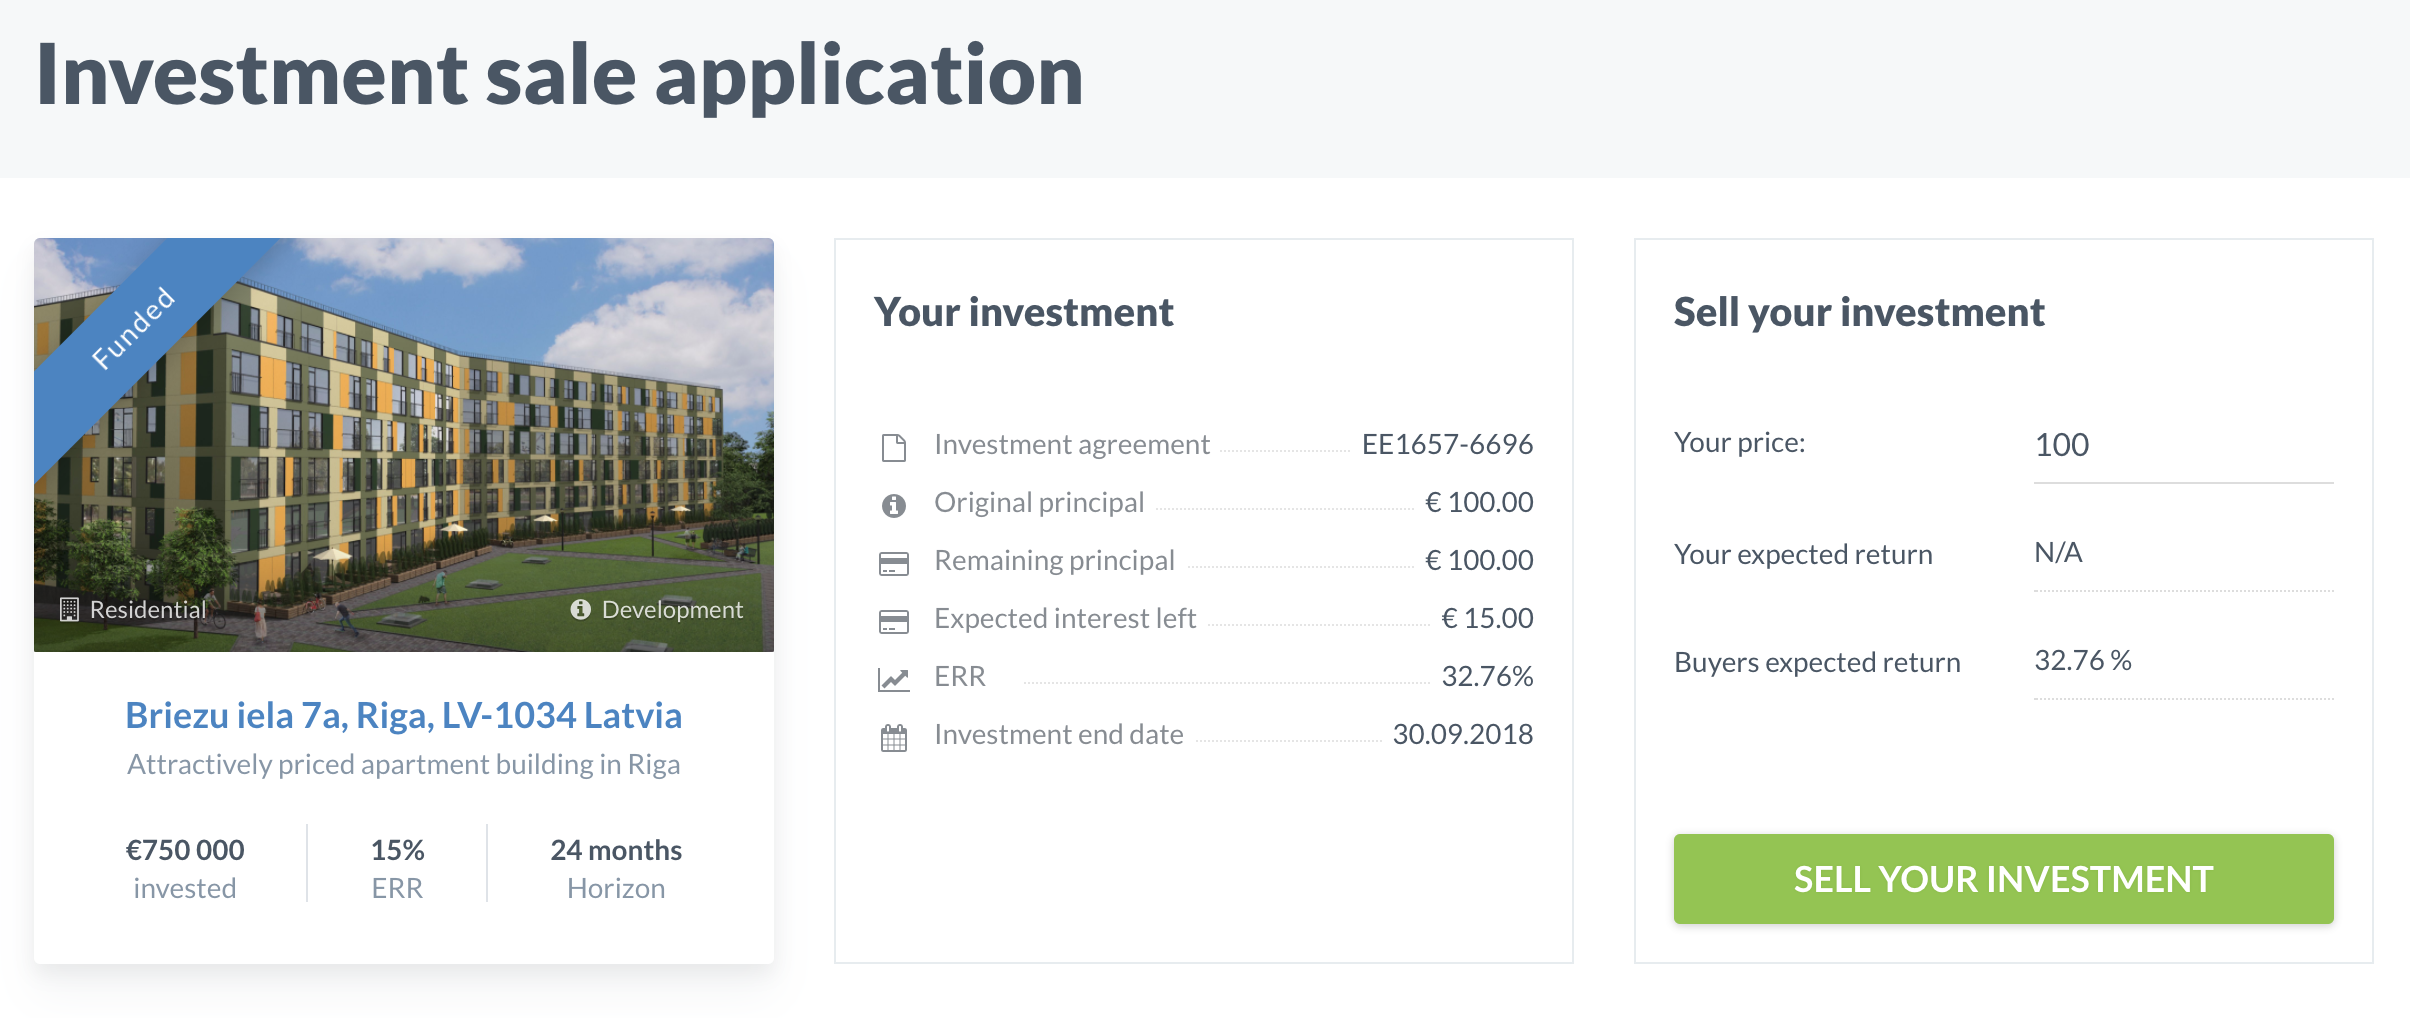 investment-sale-application